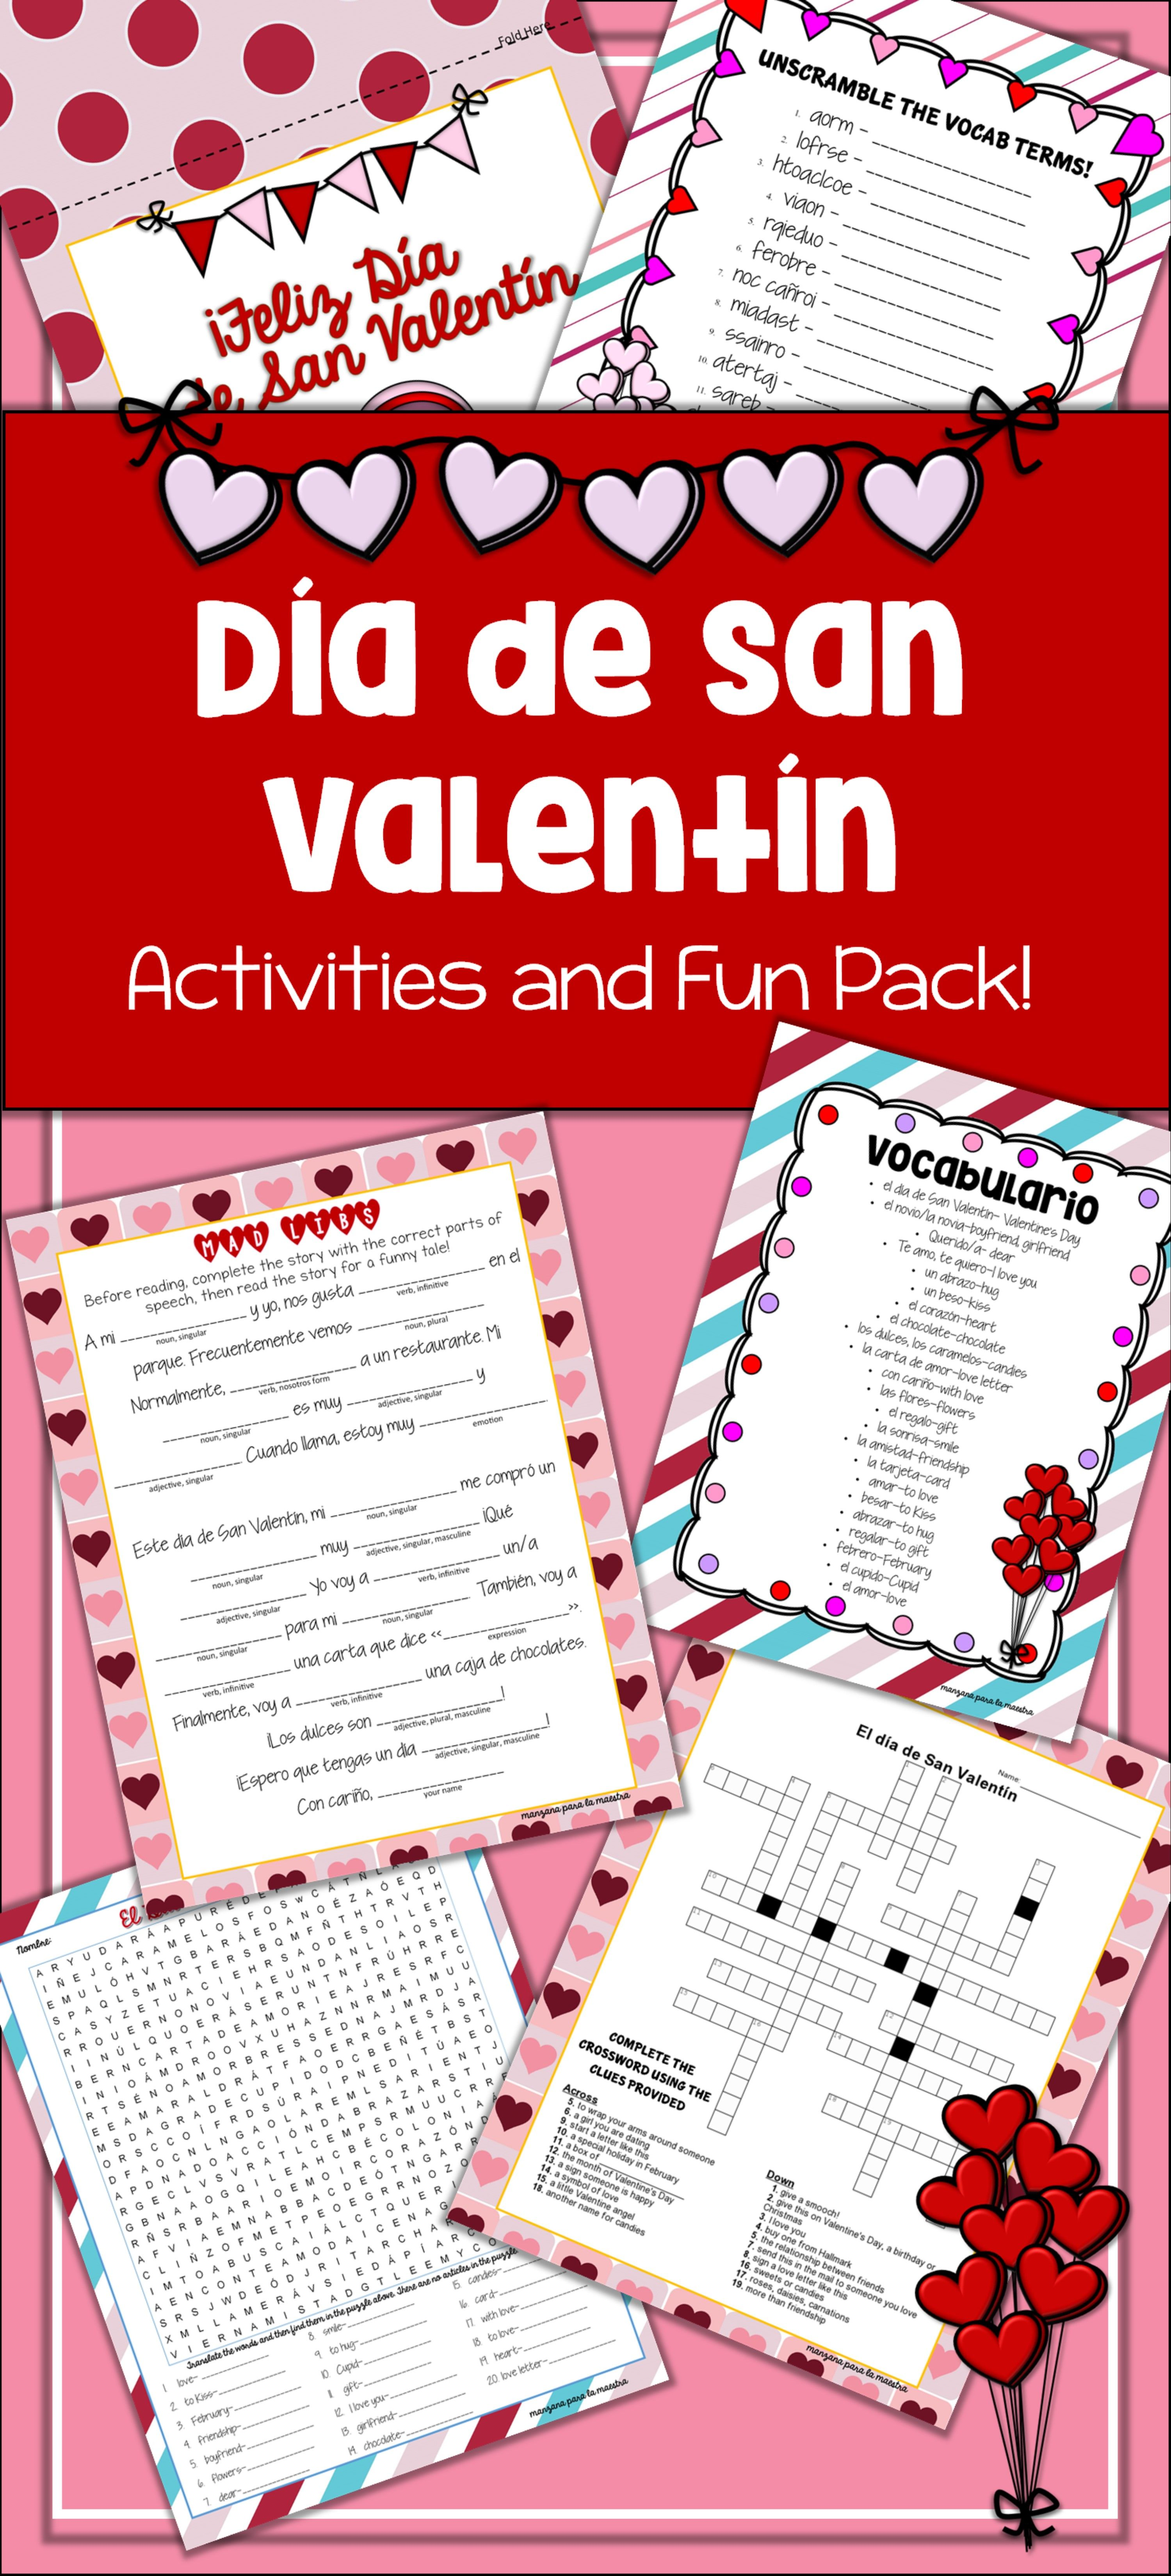 Fun Spanish Valentine S Day Lesson Plan And Activities Good For All Levels This Set Includes Vocab List Word Search Spanish Activities Valentines Lesson [ 6600 x 3000 Pixel ]